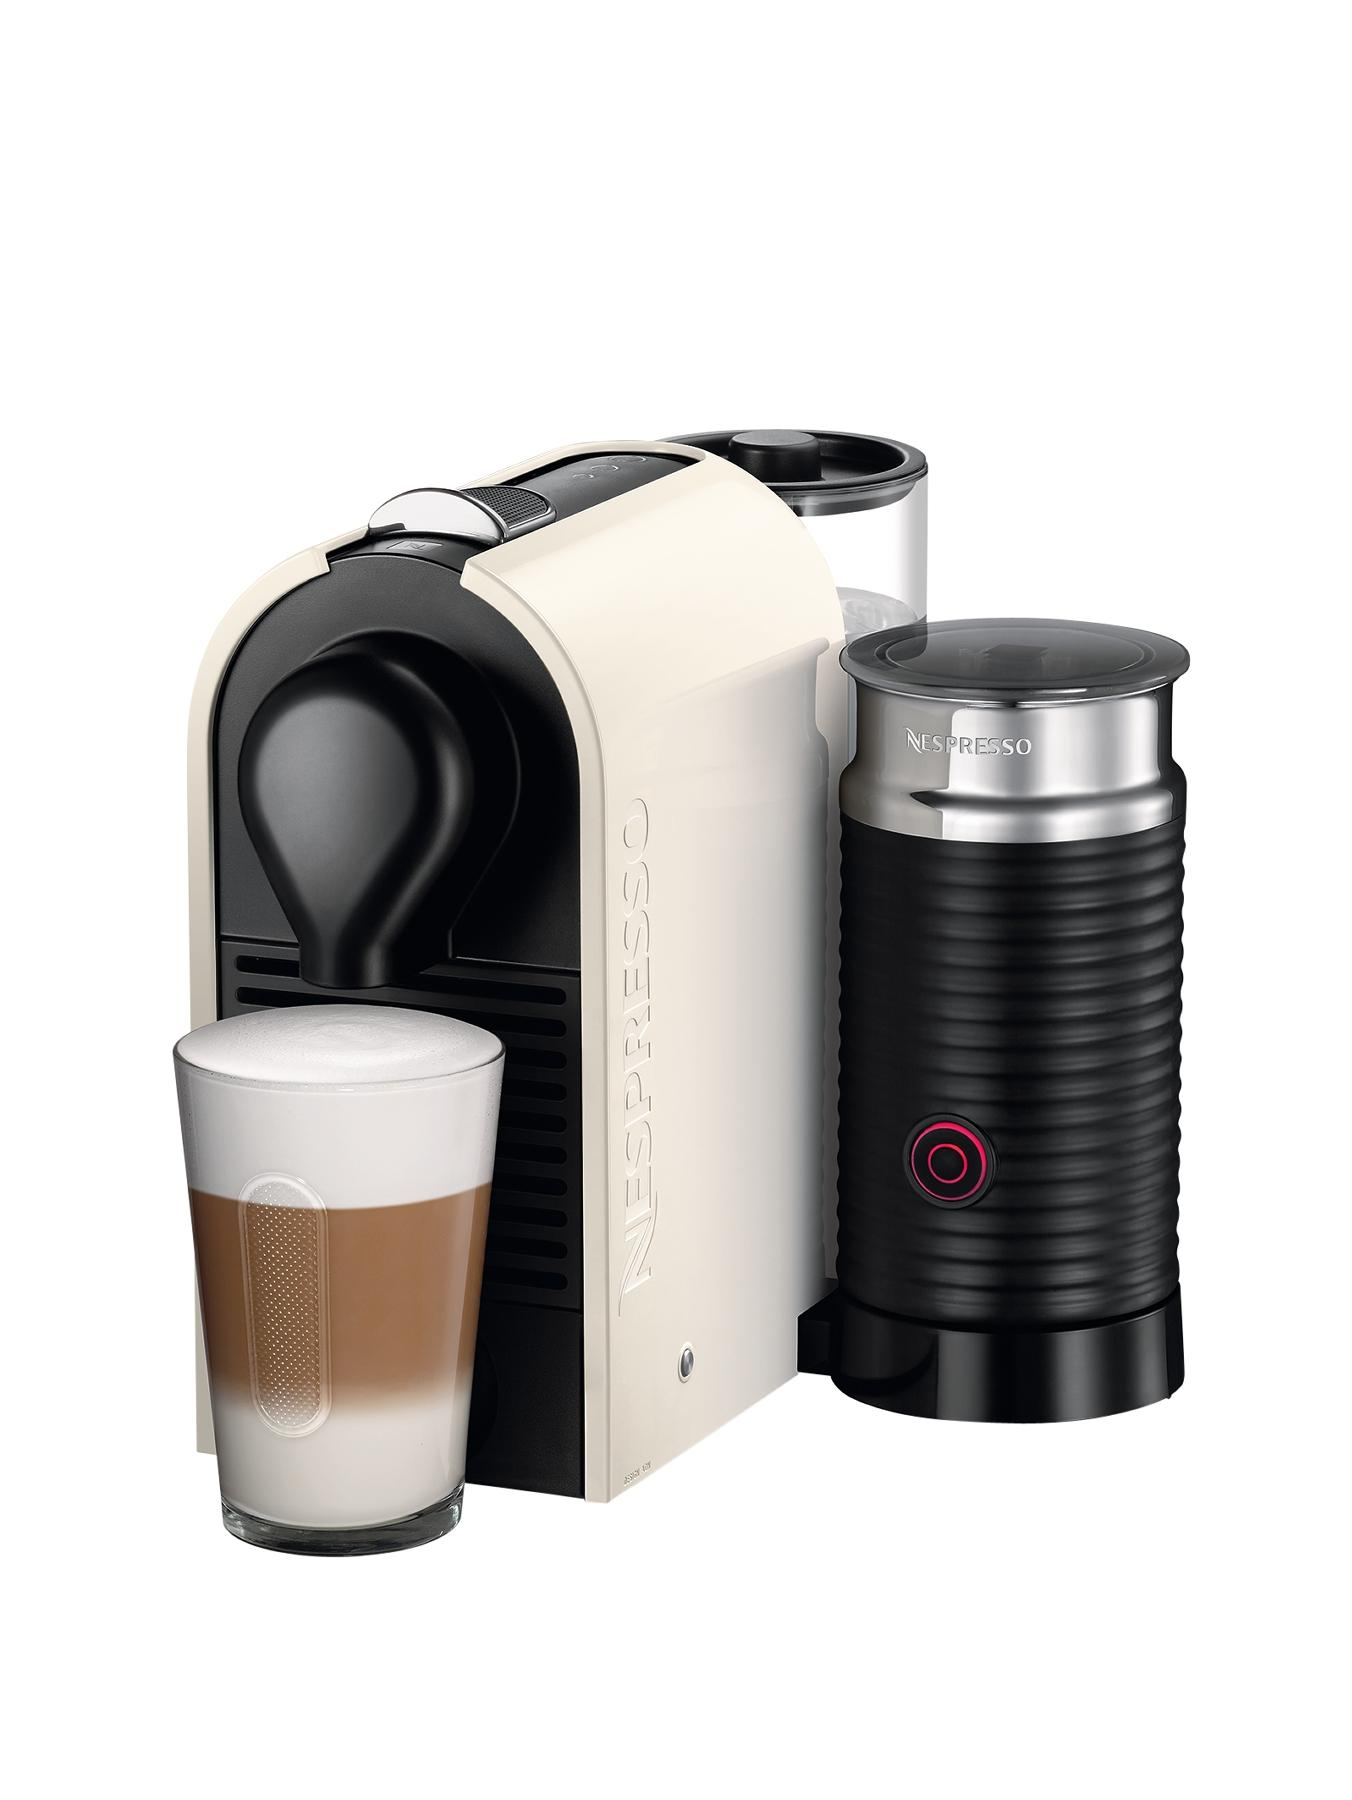 XN260140 Nespresso U & Milk Coffee Machine